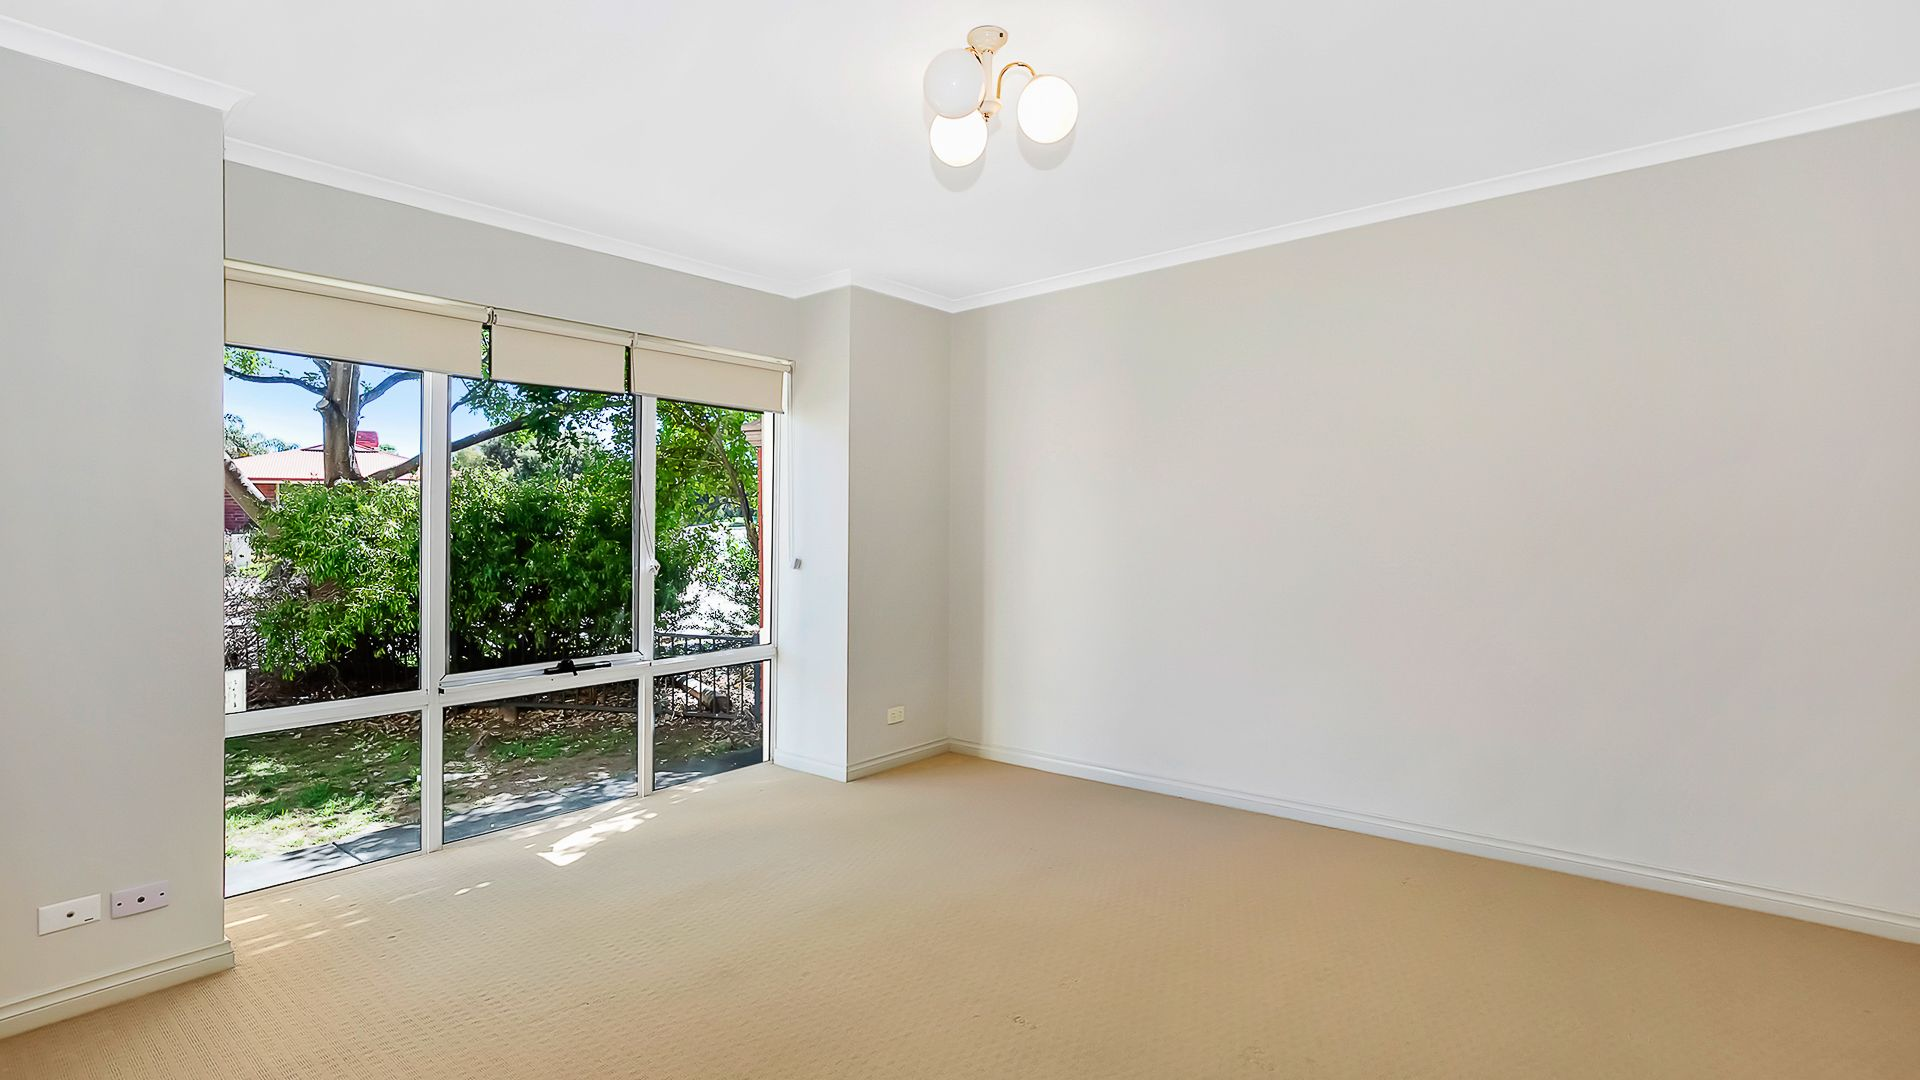 14/1 Wentworth Court, Golden Grove SA 5125, Image 1